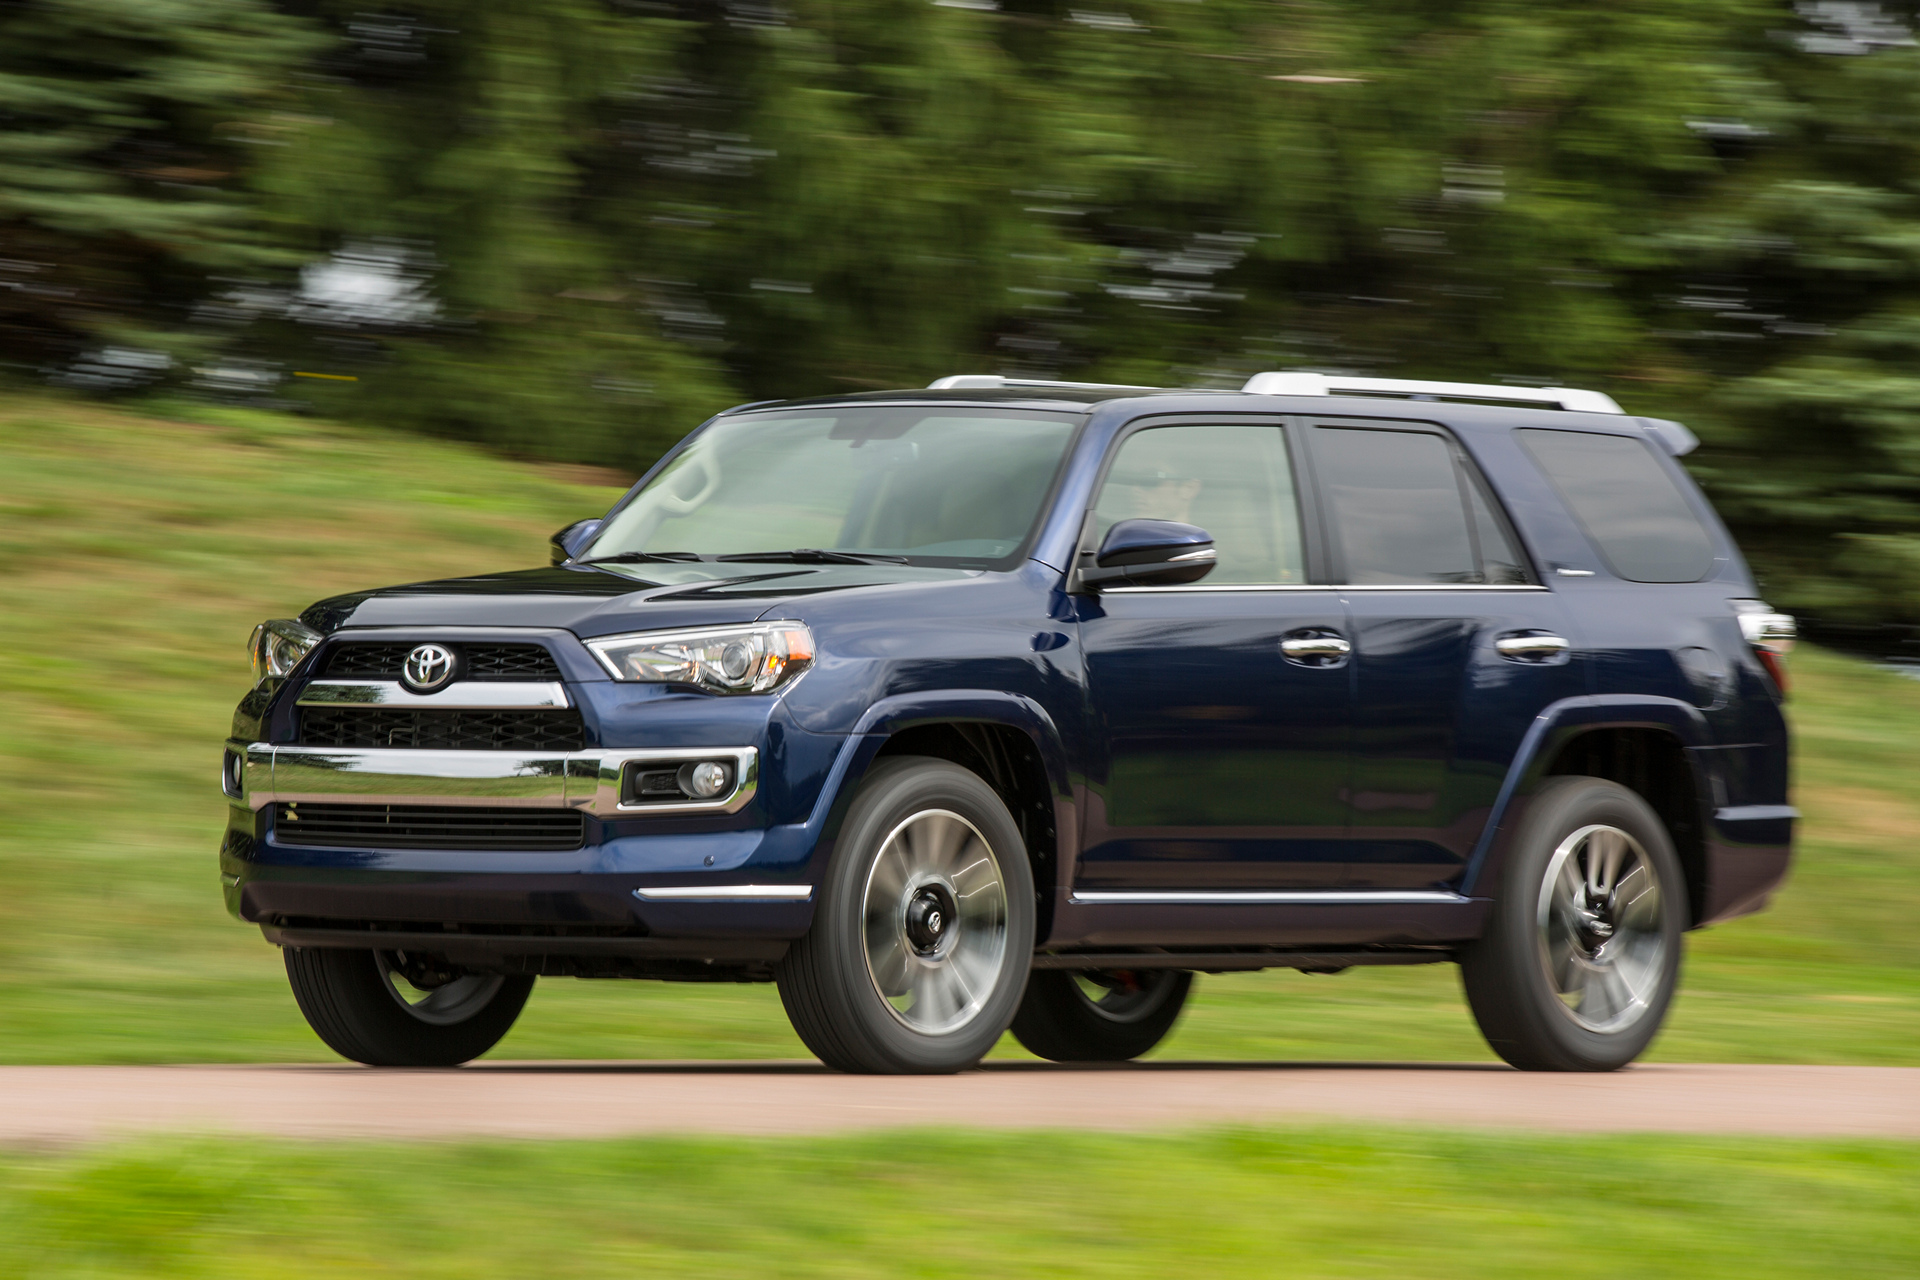 2017 Toyota 4Runner © Toyota Motor Corporation